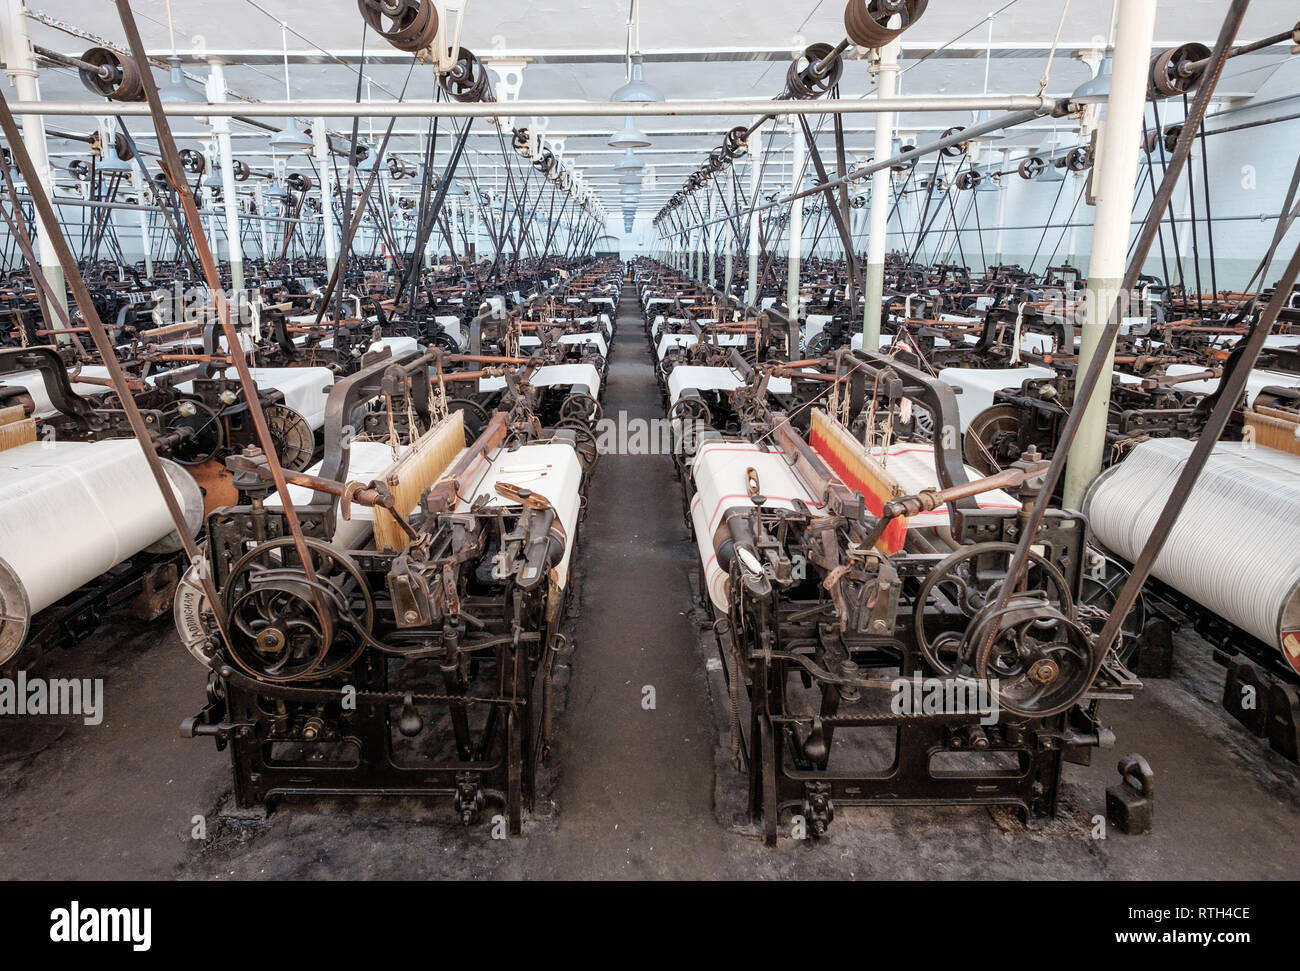 The weaving shed at Queen Street Mill in Lancashire, a preserved steam powered textile mill. - Stock Image